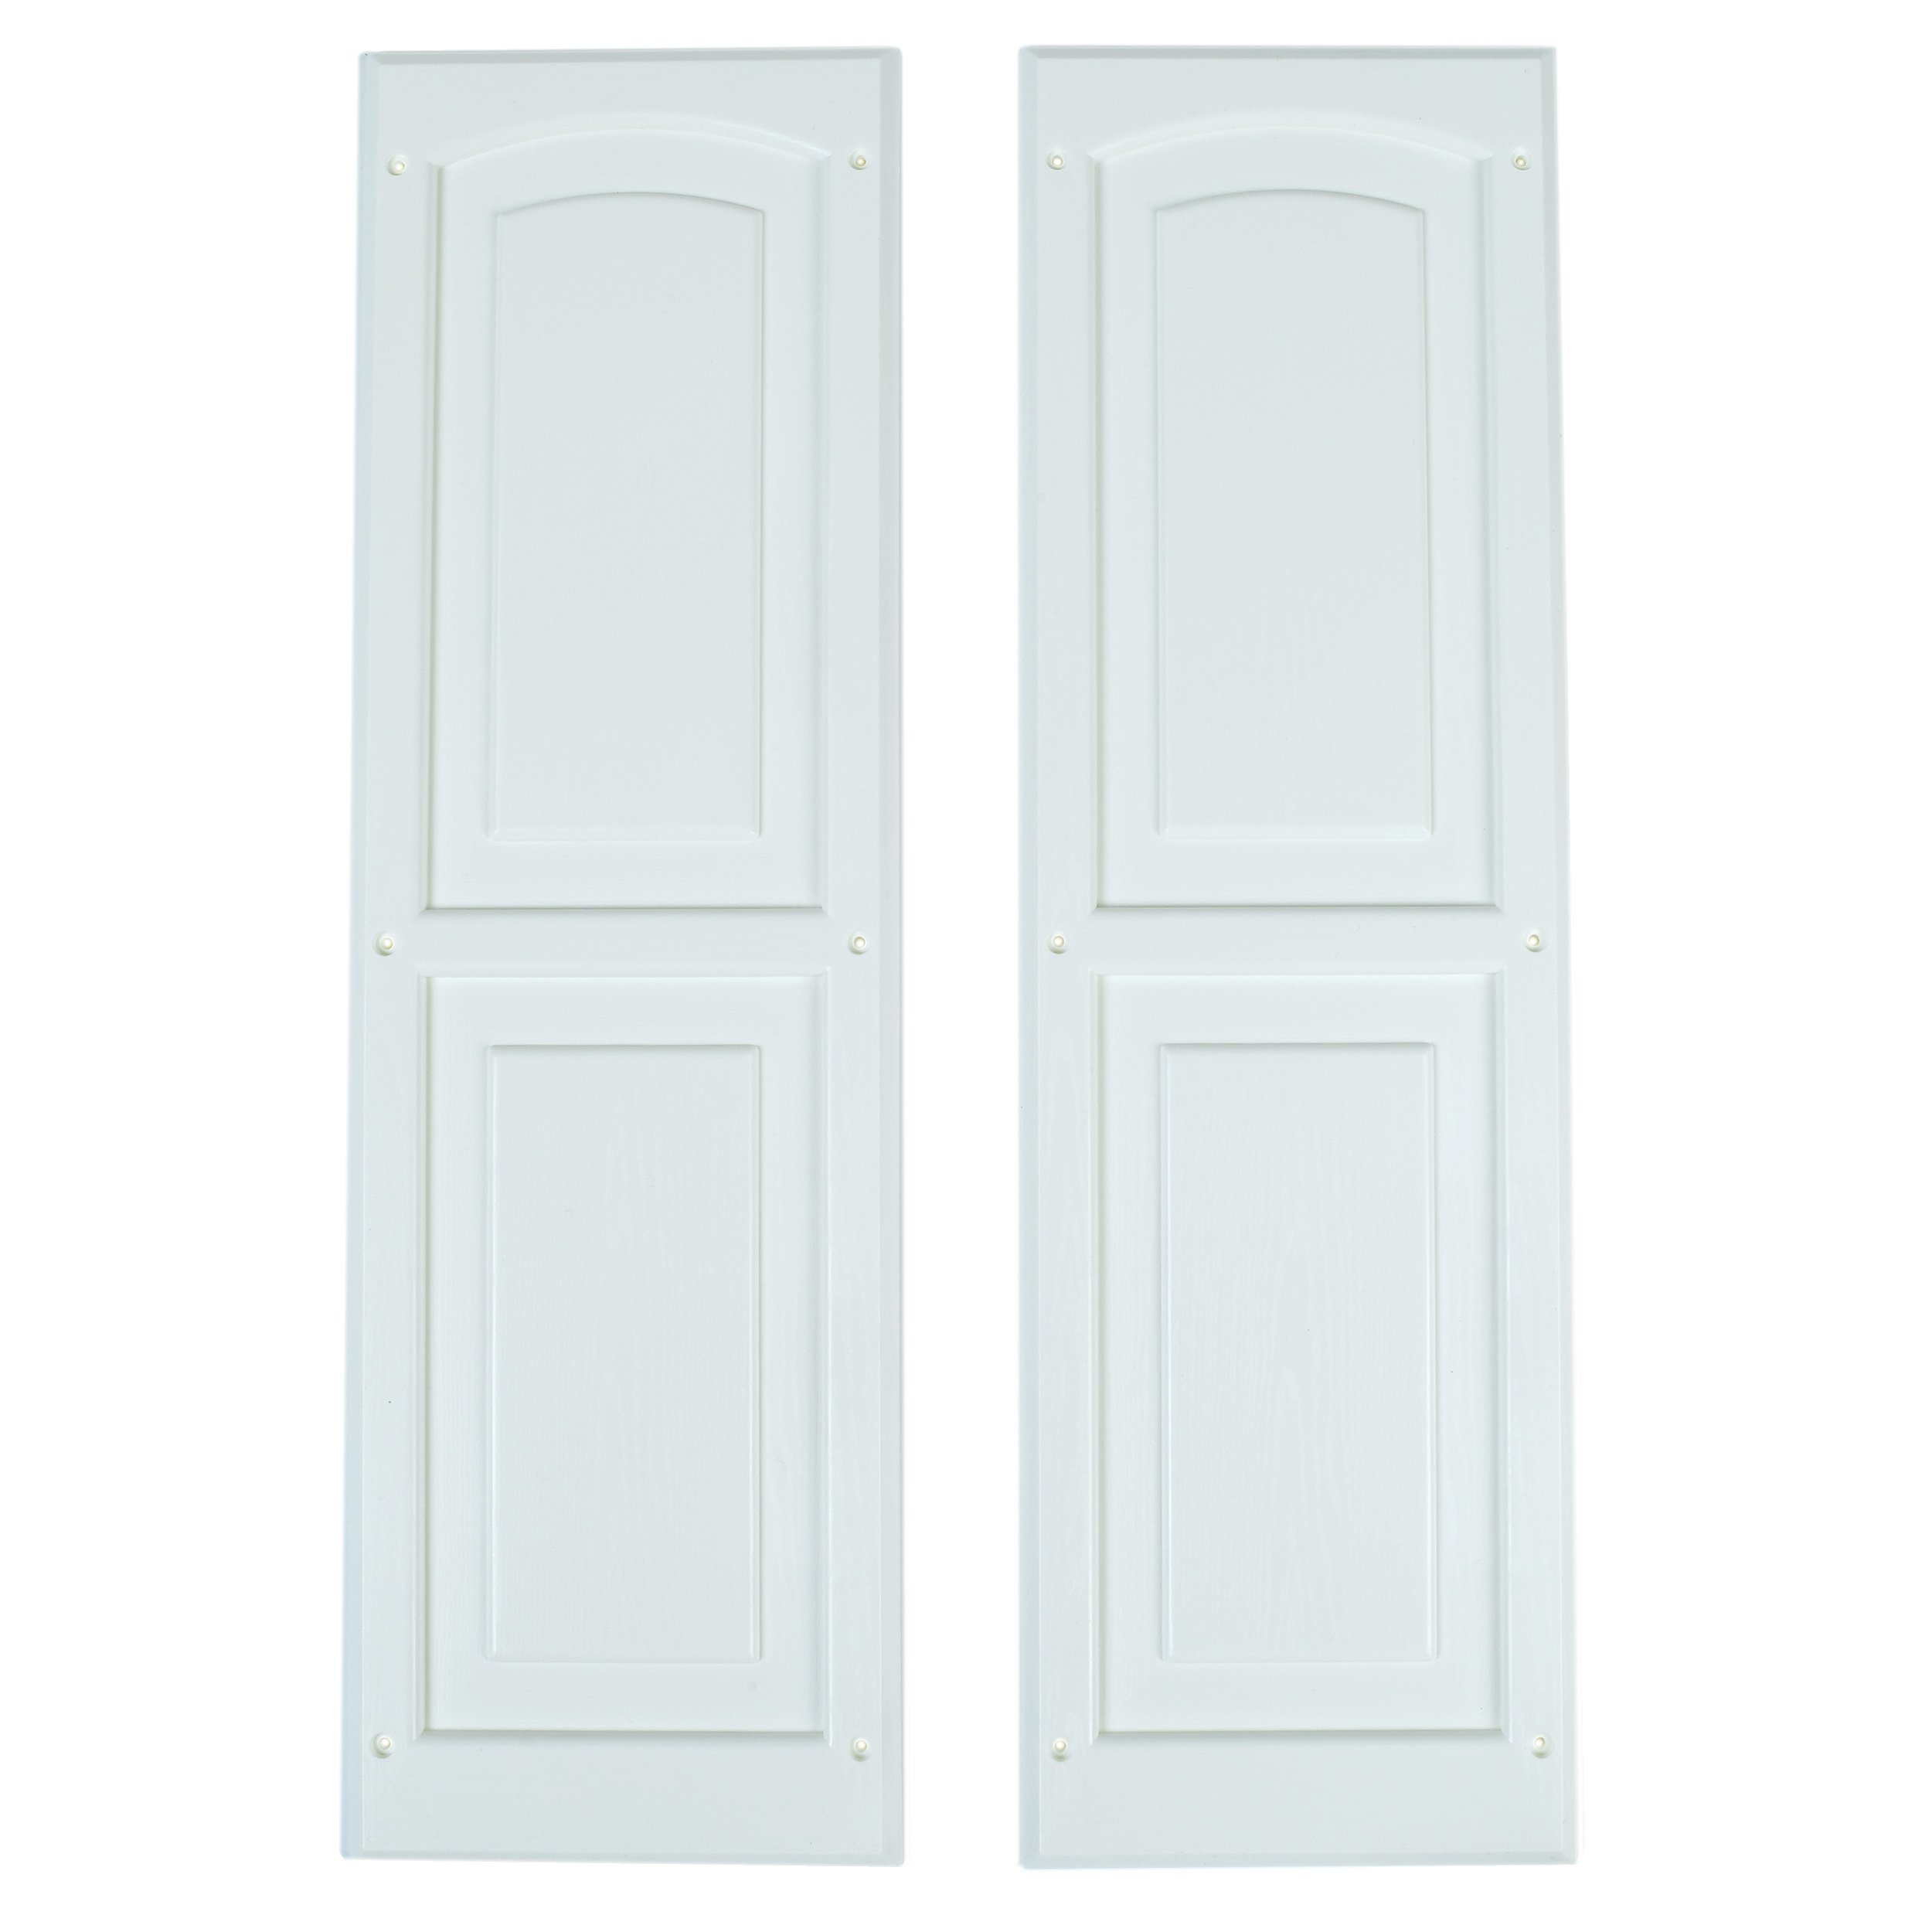 Handy Home Products Window Shutter Pair, 8'' x 24.5''